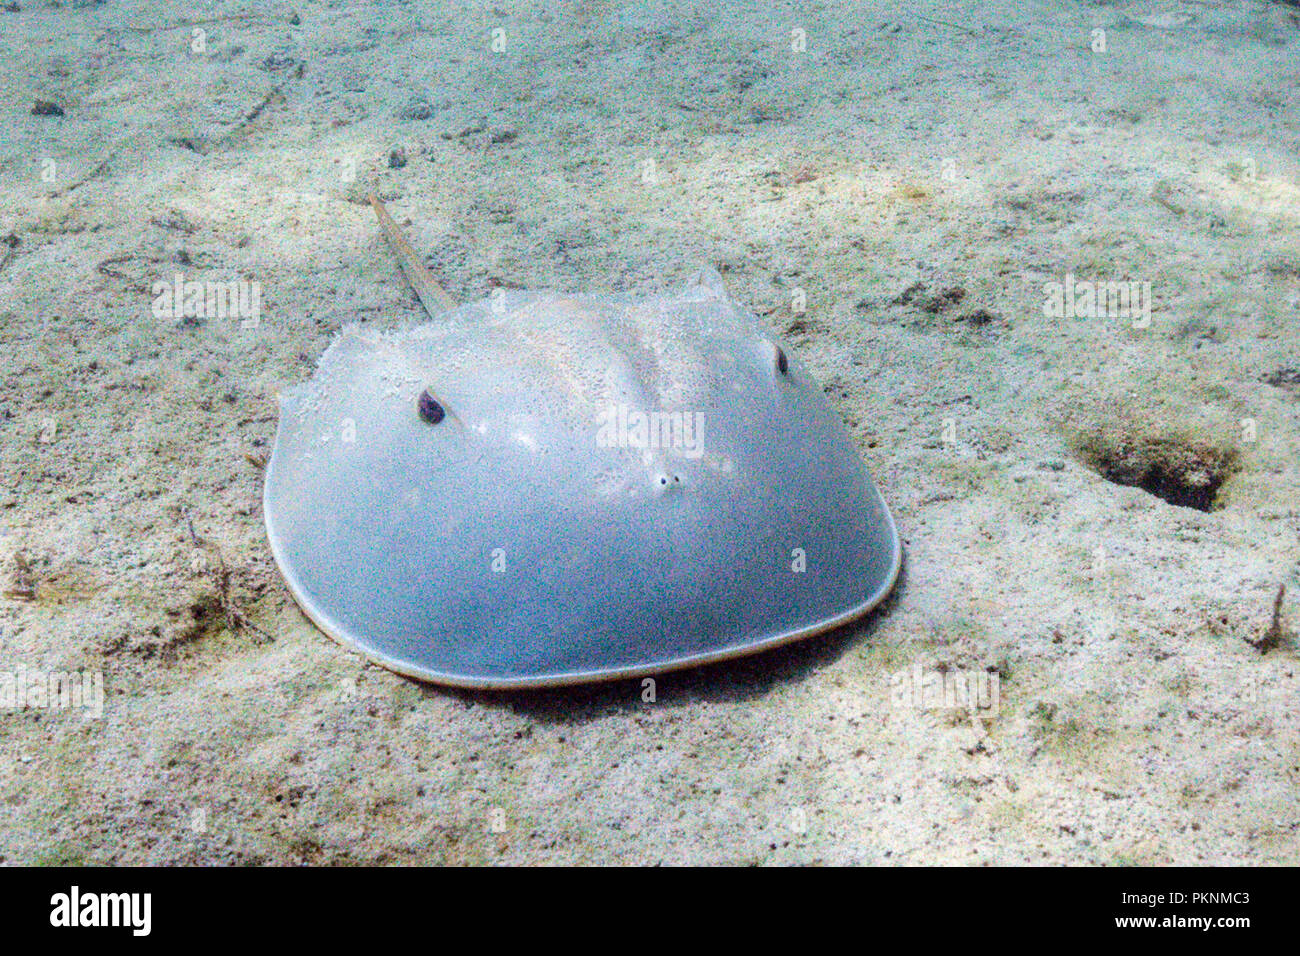 Horseshoe Crab in Mangroves, Limulus polyphemus, Cancun, Yucatan, Mexico - Stock Image